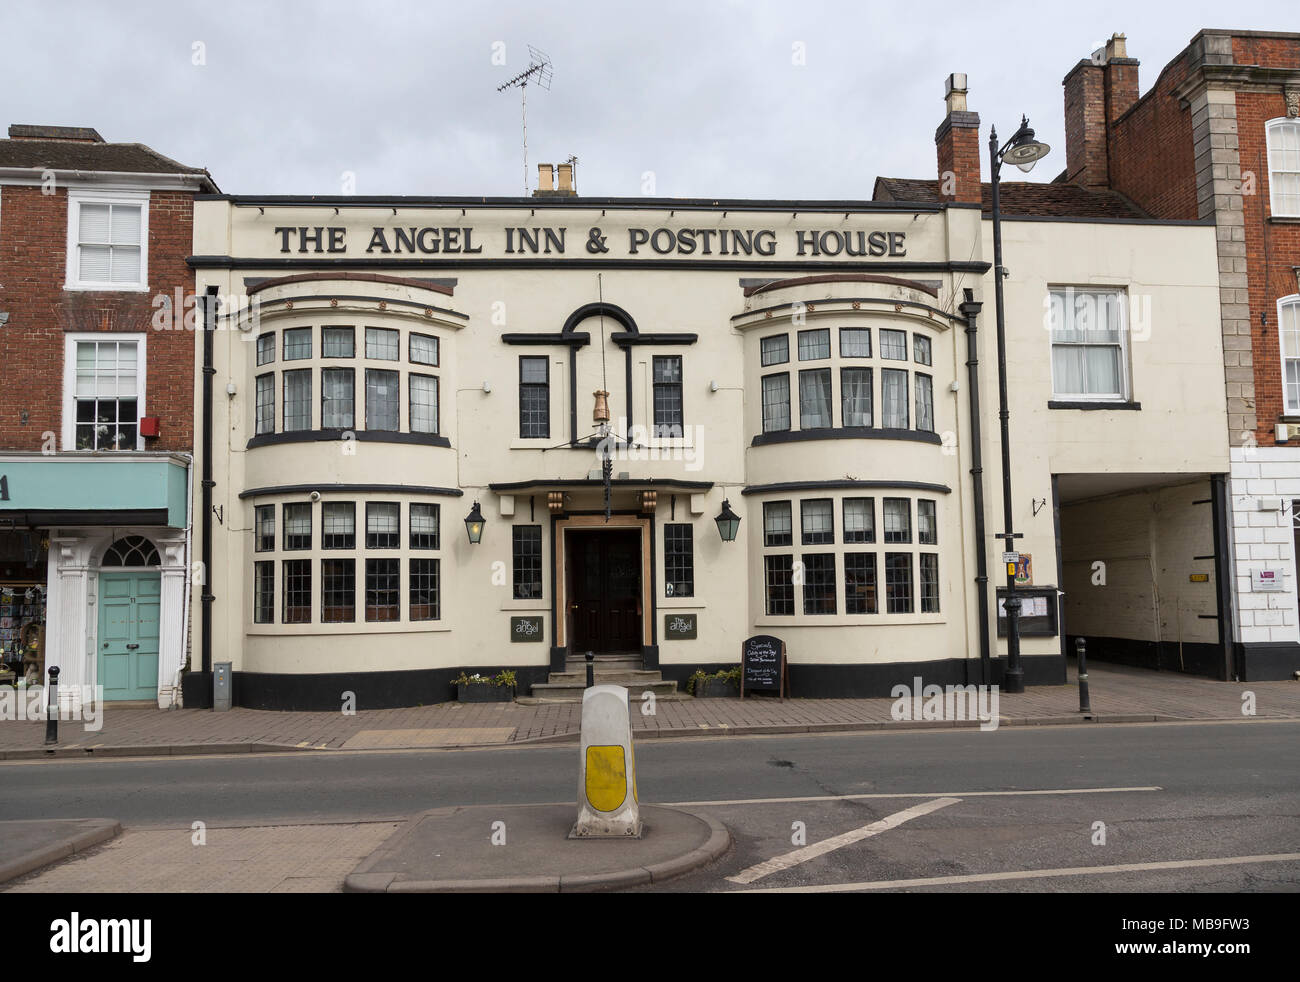 The Angel Inn and Posting House, Pershore, Worcestershire, England, UK - Stock Image